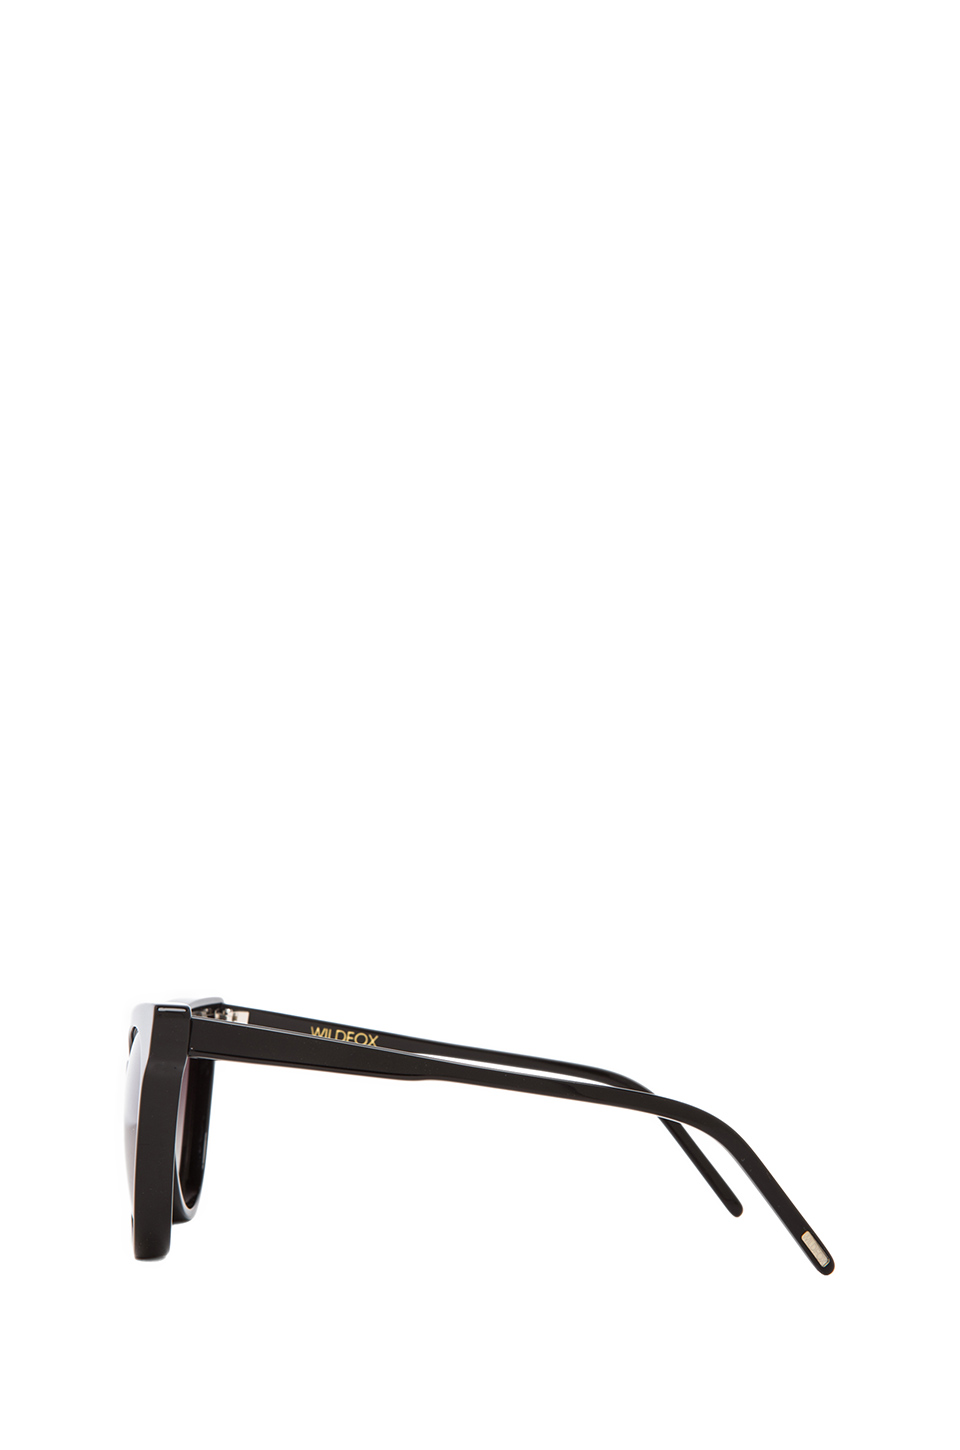 Wildfox Couture Le Femme Sunglasses in Black | REVOLVE